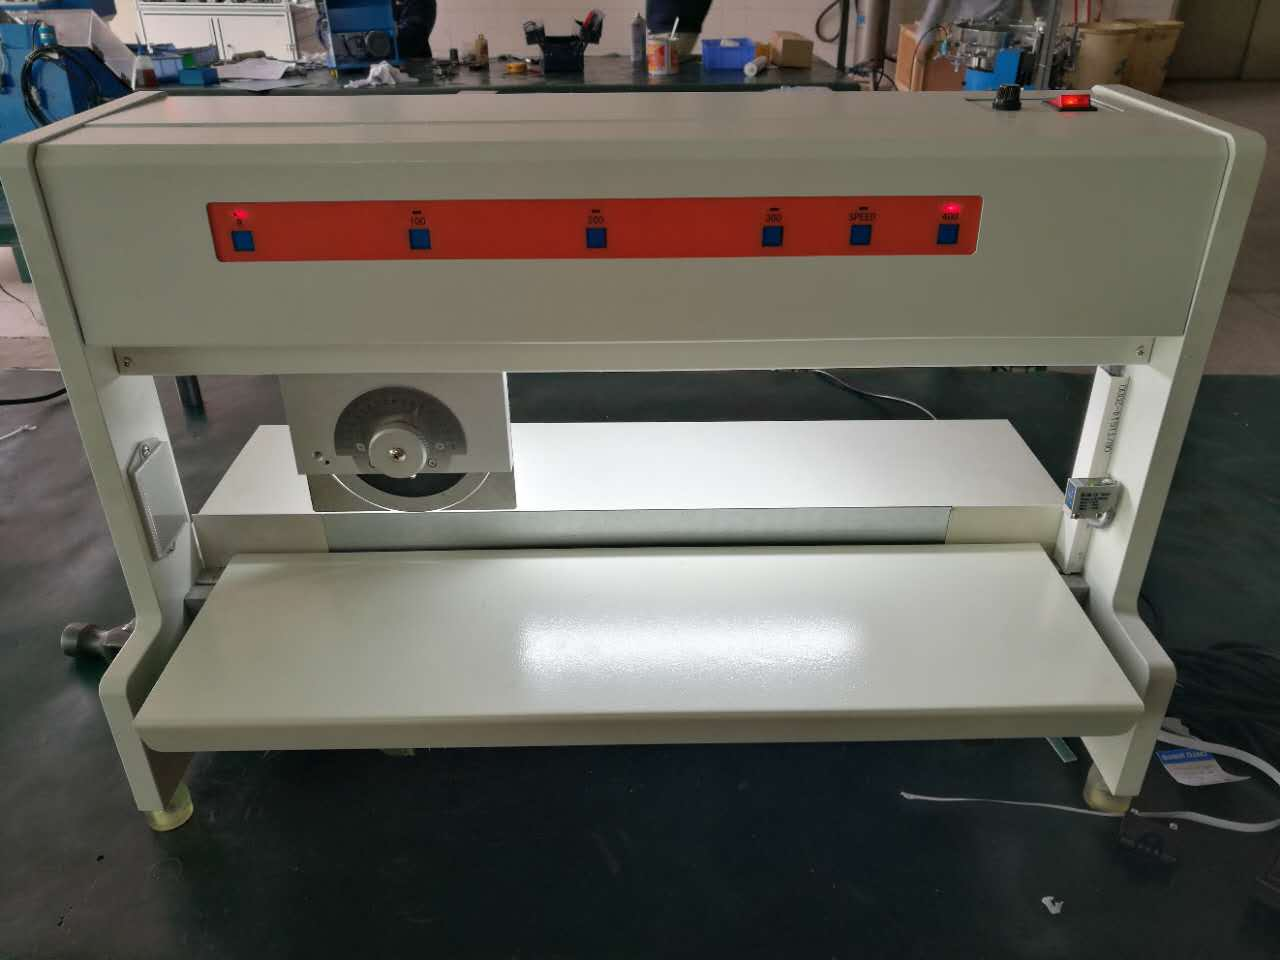 Moving-Blade Style PCB Separator